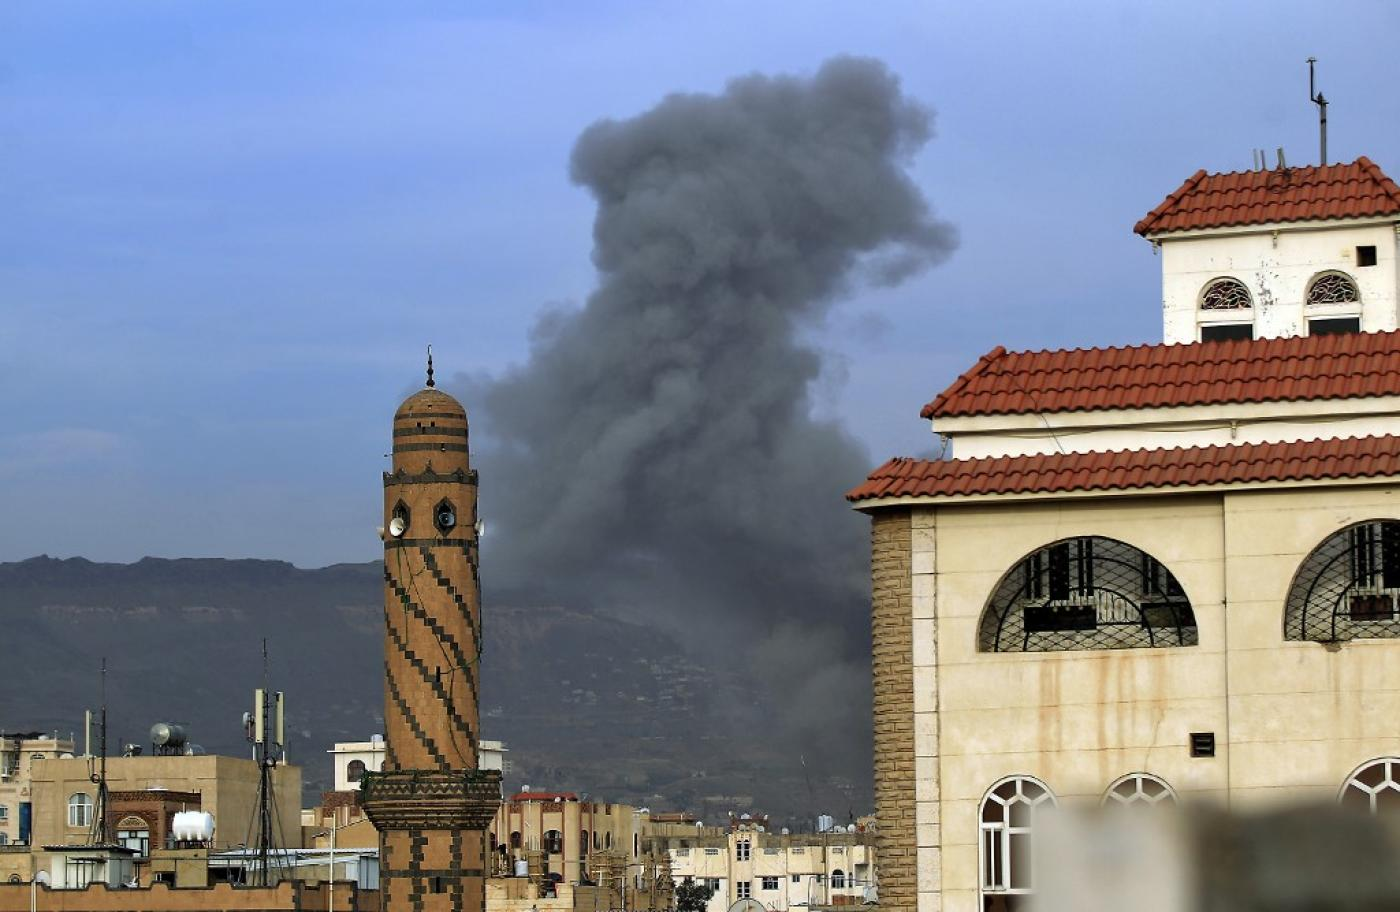 Yemen has endured years of chaos since the Houthis seized the capital and large swathes of north Yemen